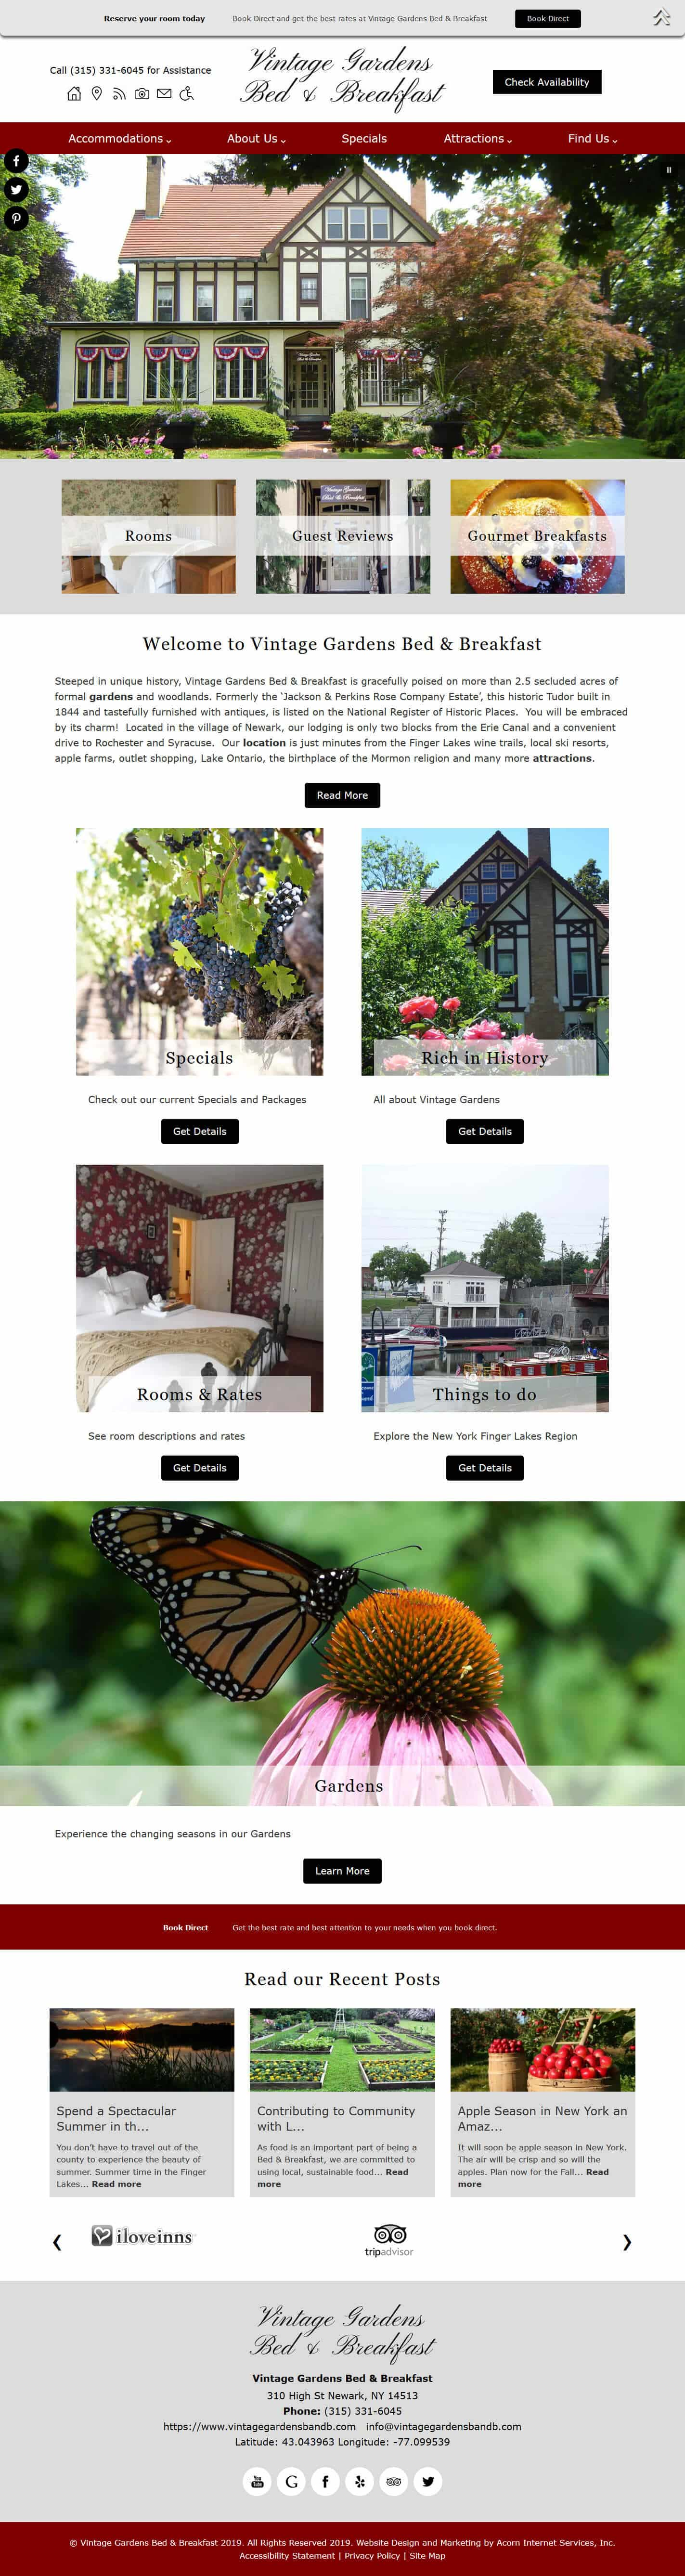 Vintage Gardens Bed Breakfast home page